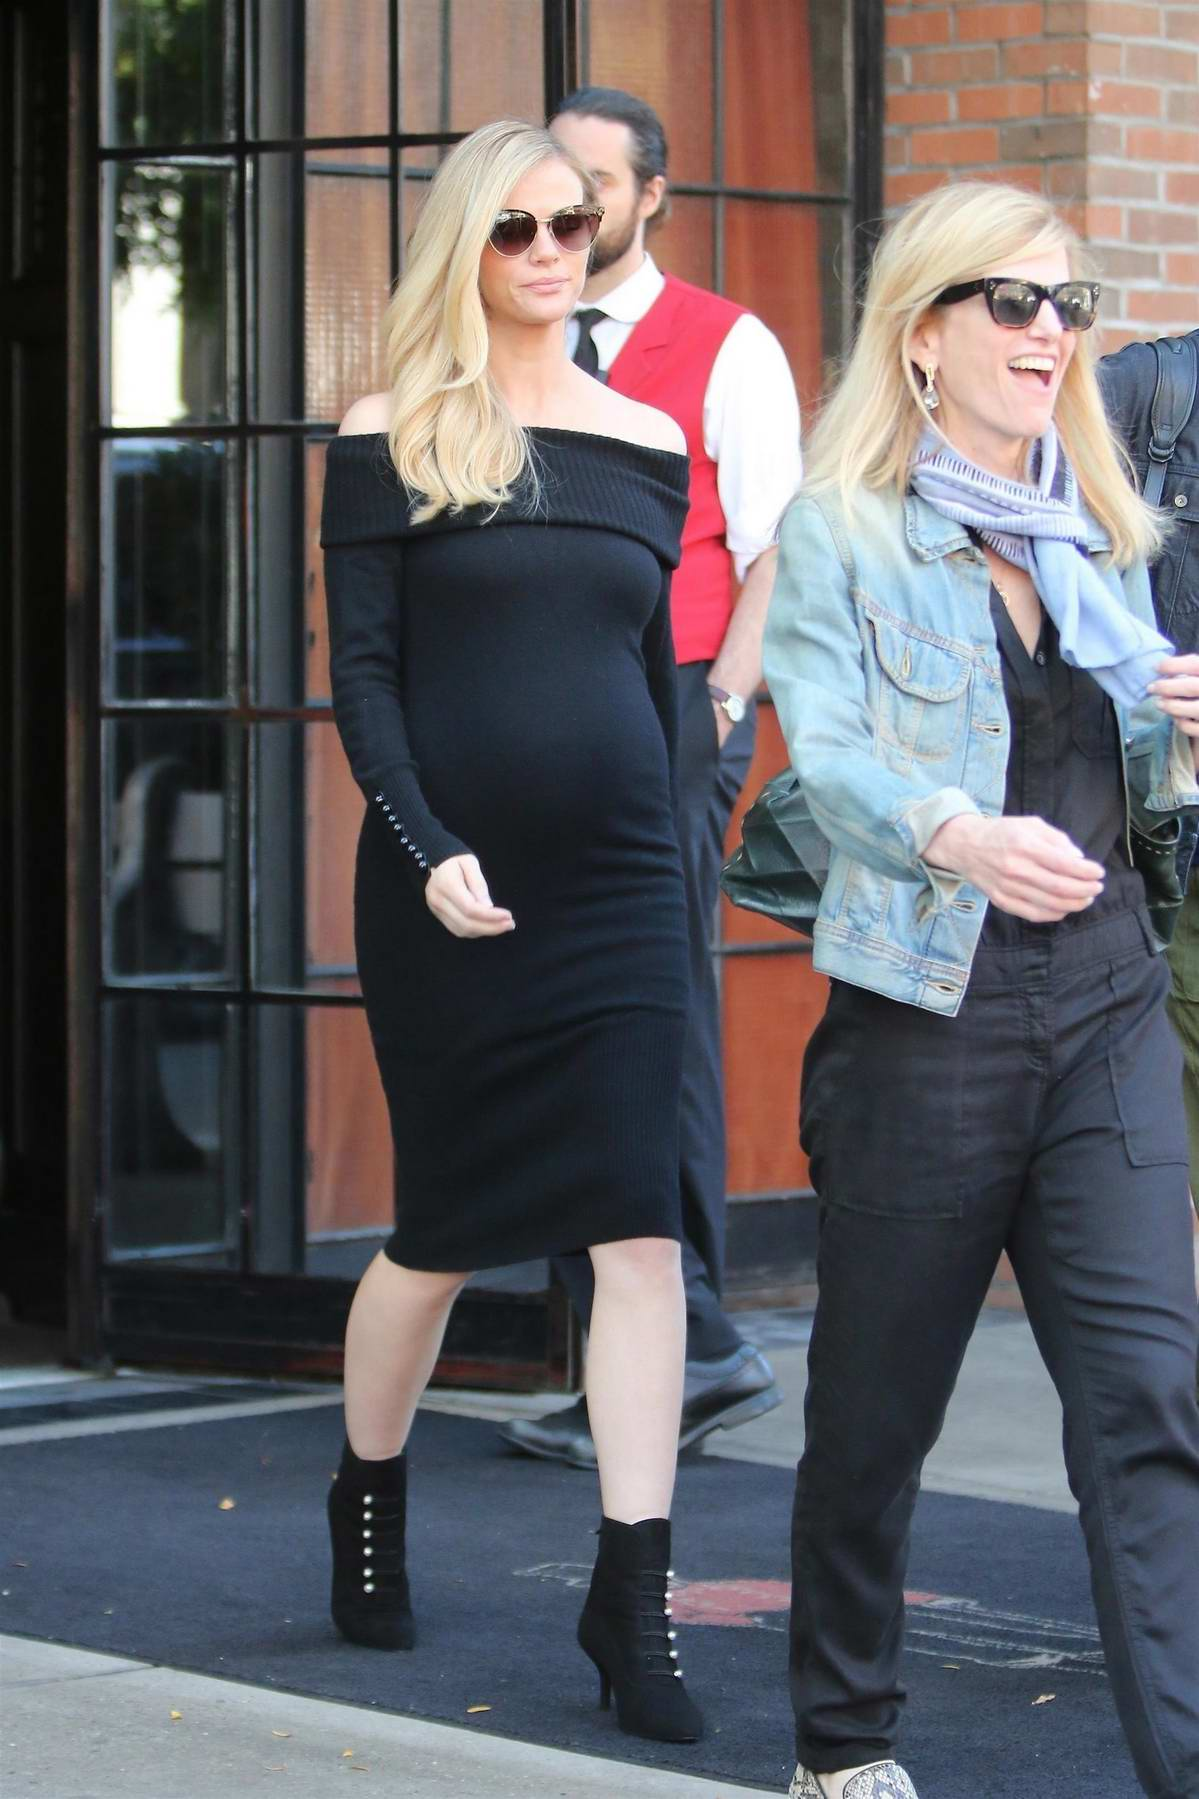 Brooklyn Decker dressed in all black leaving The Bowery Hotel in New York City